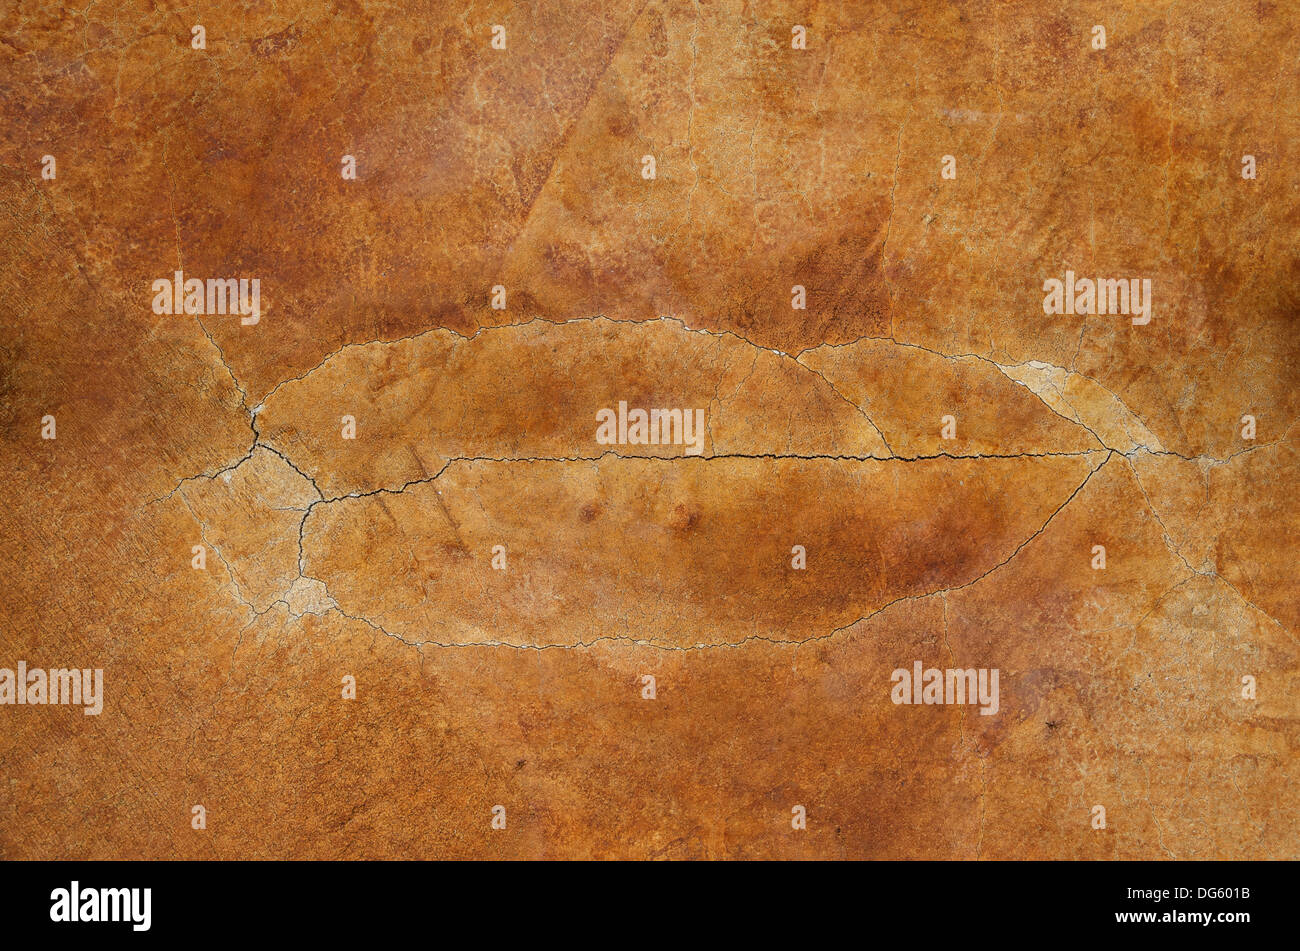 Rust Cement Wall : Cracked stained rust red concrete floor background texture